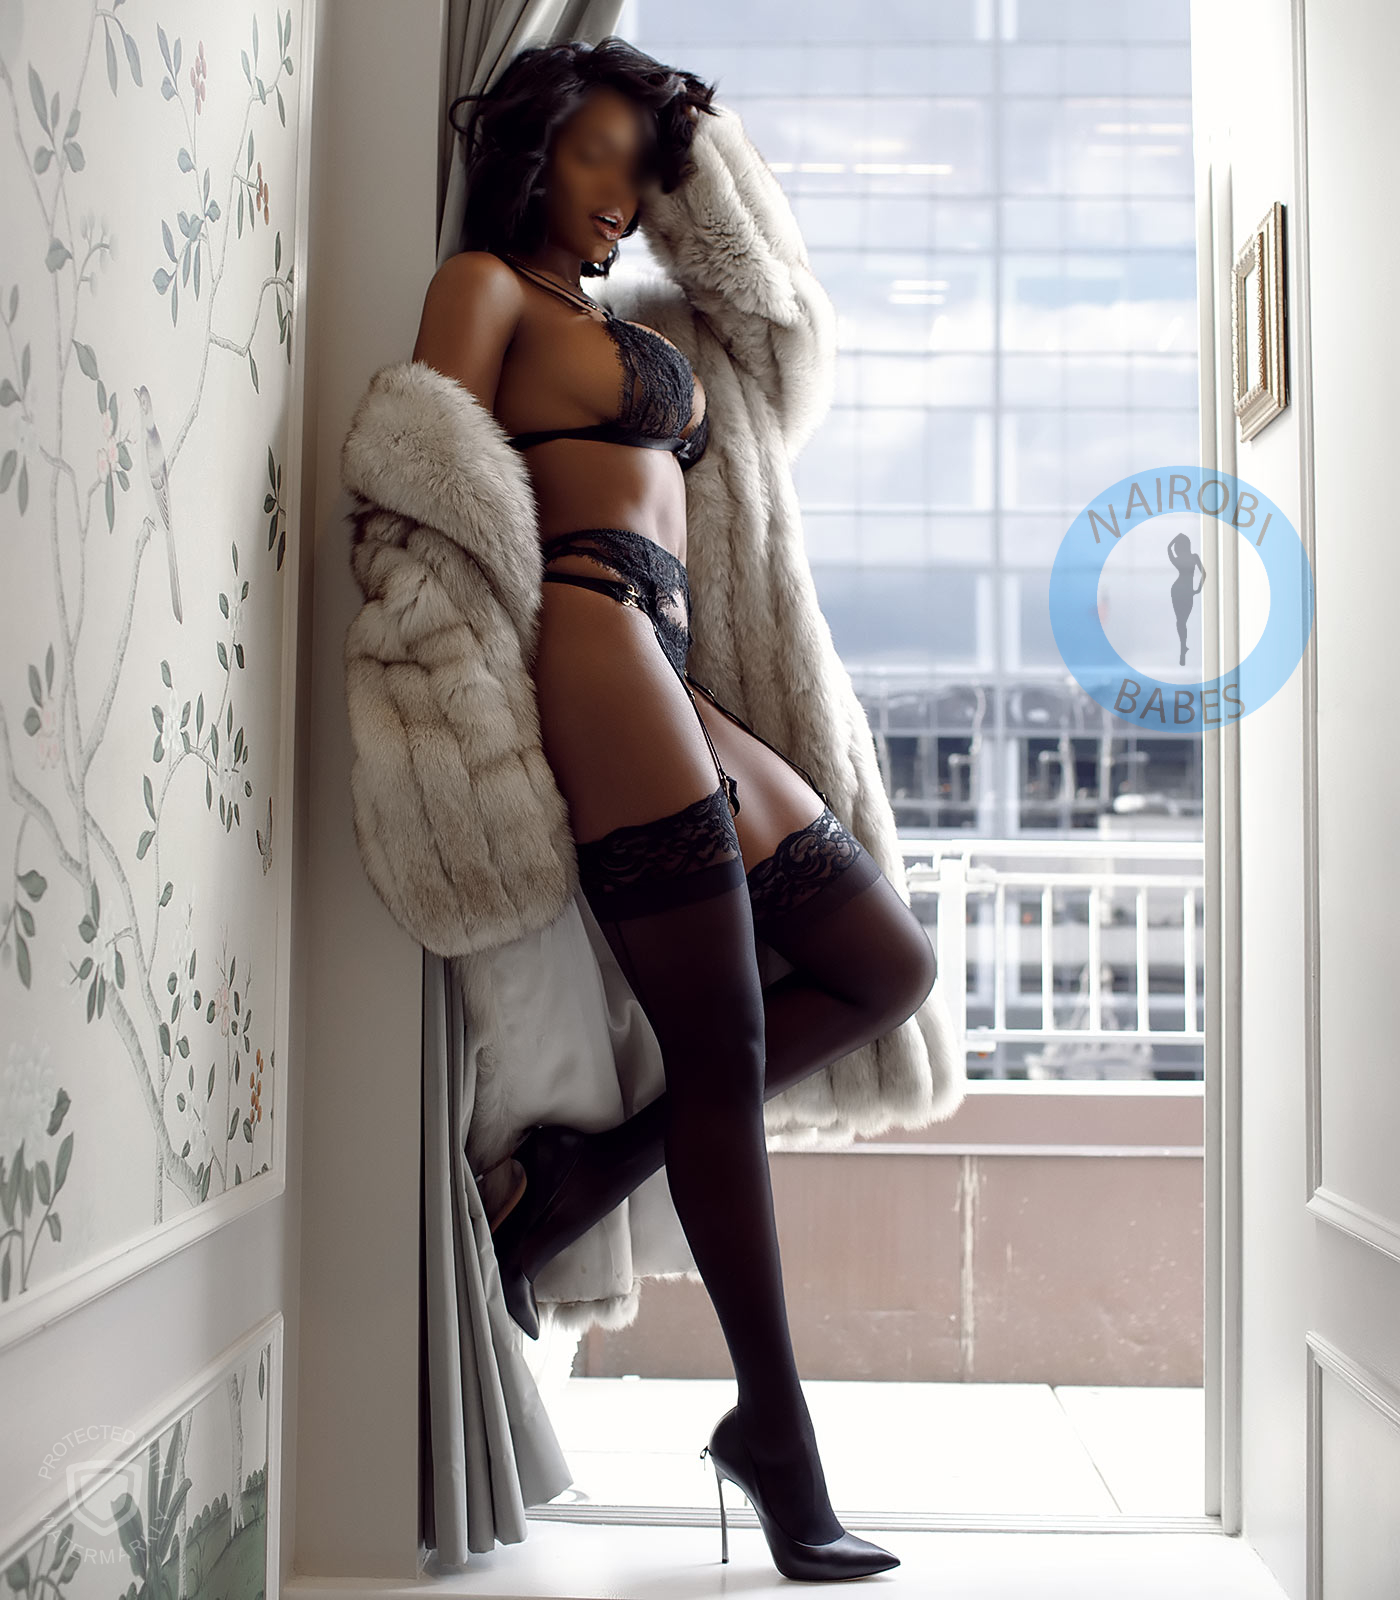 Book a meeting with Nairobibabes Escort Charlotte in CBD today